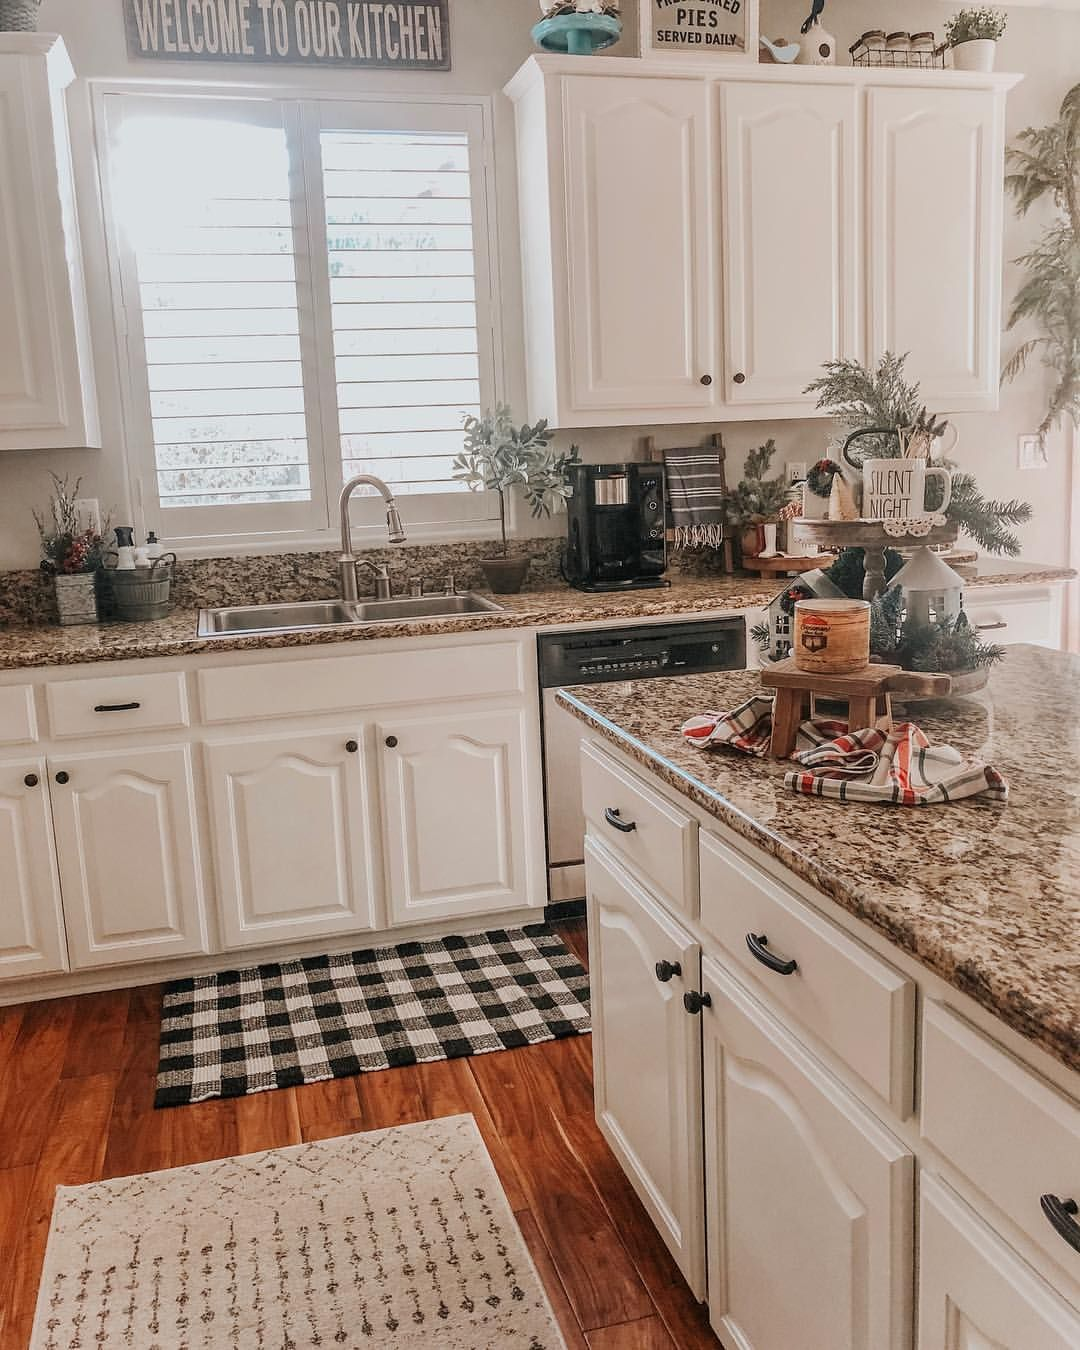 Good Morning Friends Any Big Plans Today Yesterday I Ordered Some Peel And Stick Wallpaper To Add A Backsplas Home Decor Kitchen Inspirations Kitchen Design